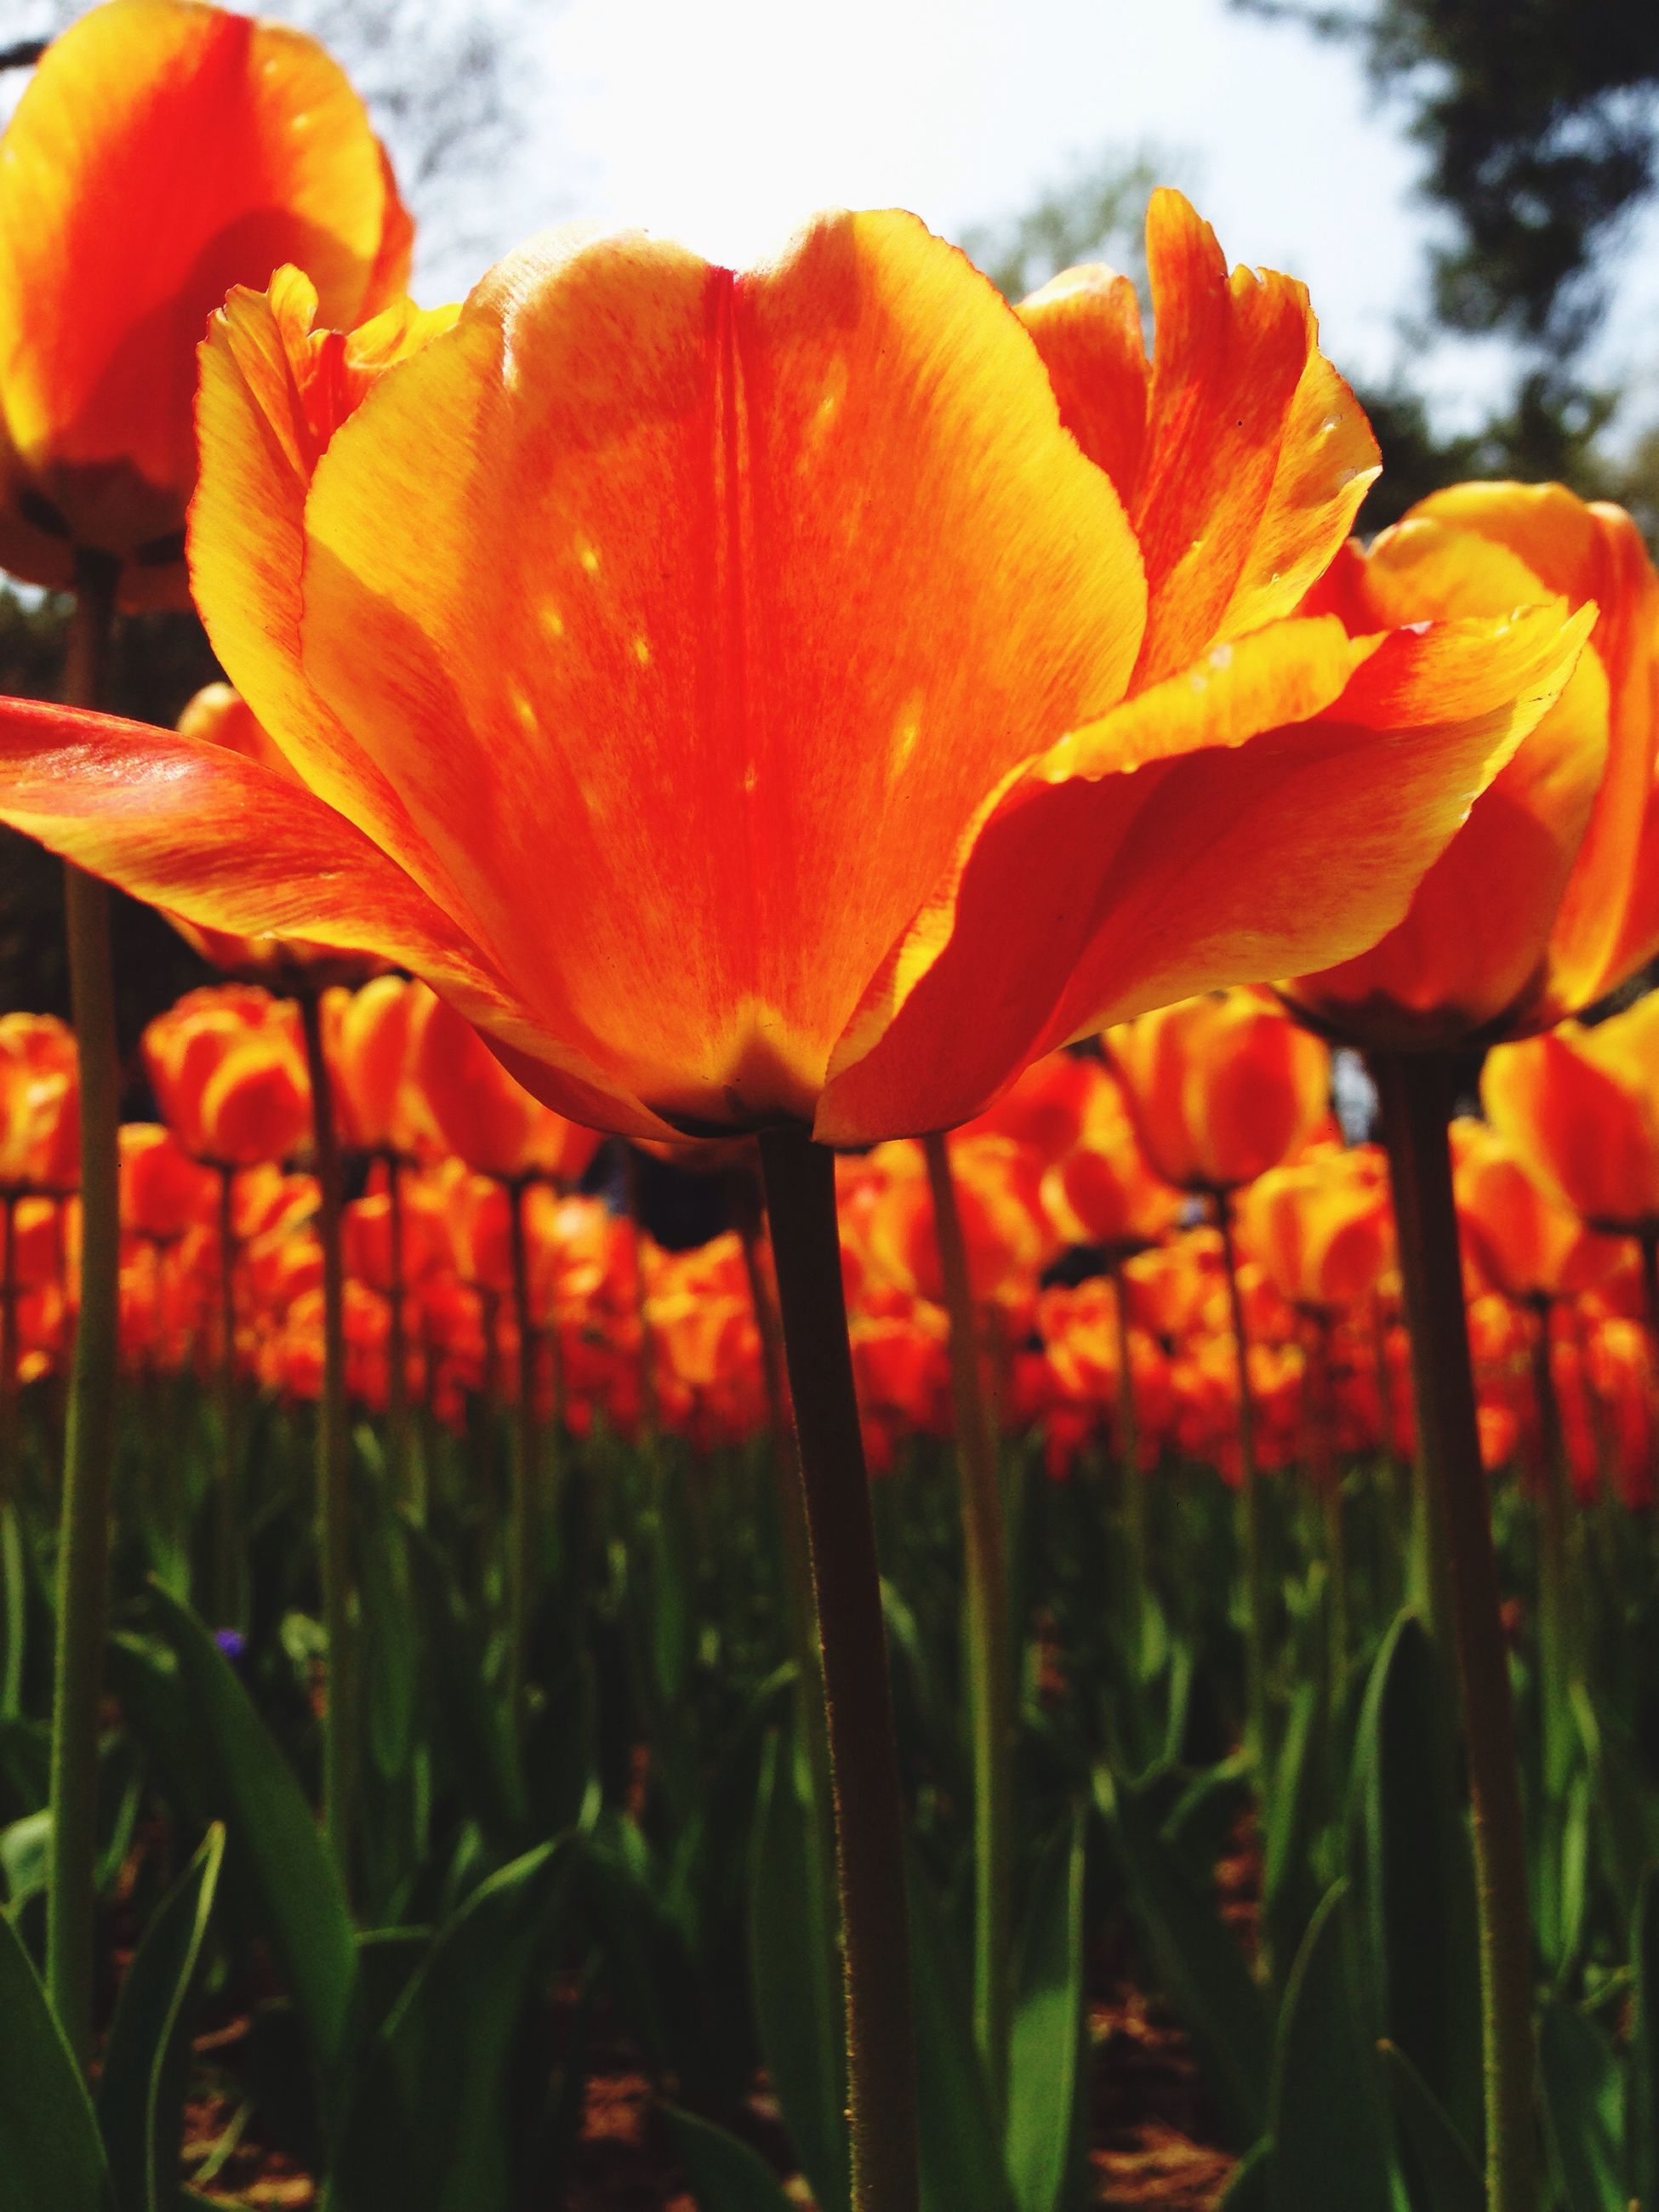 flower, freshness, growth, fragility, petal, flower head, beauty in nature, plant, nature, orange color, field, blooming, focus on foreground, stem, close-up, tulip, red, poppy, sky, in bloom